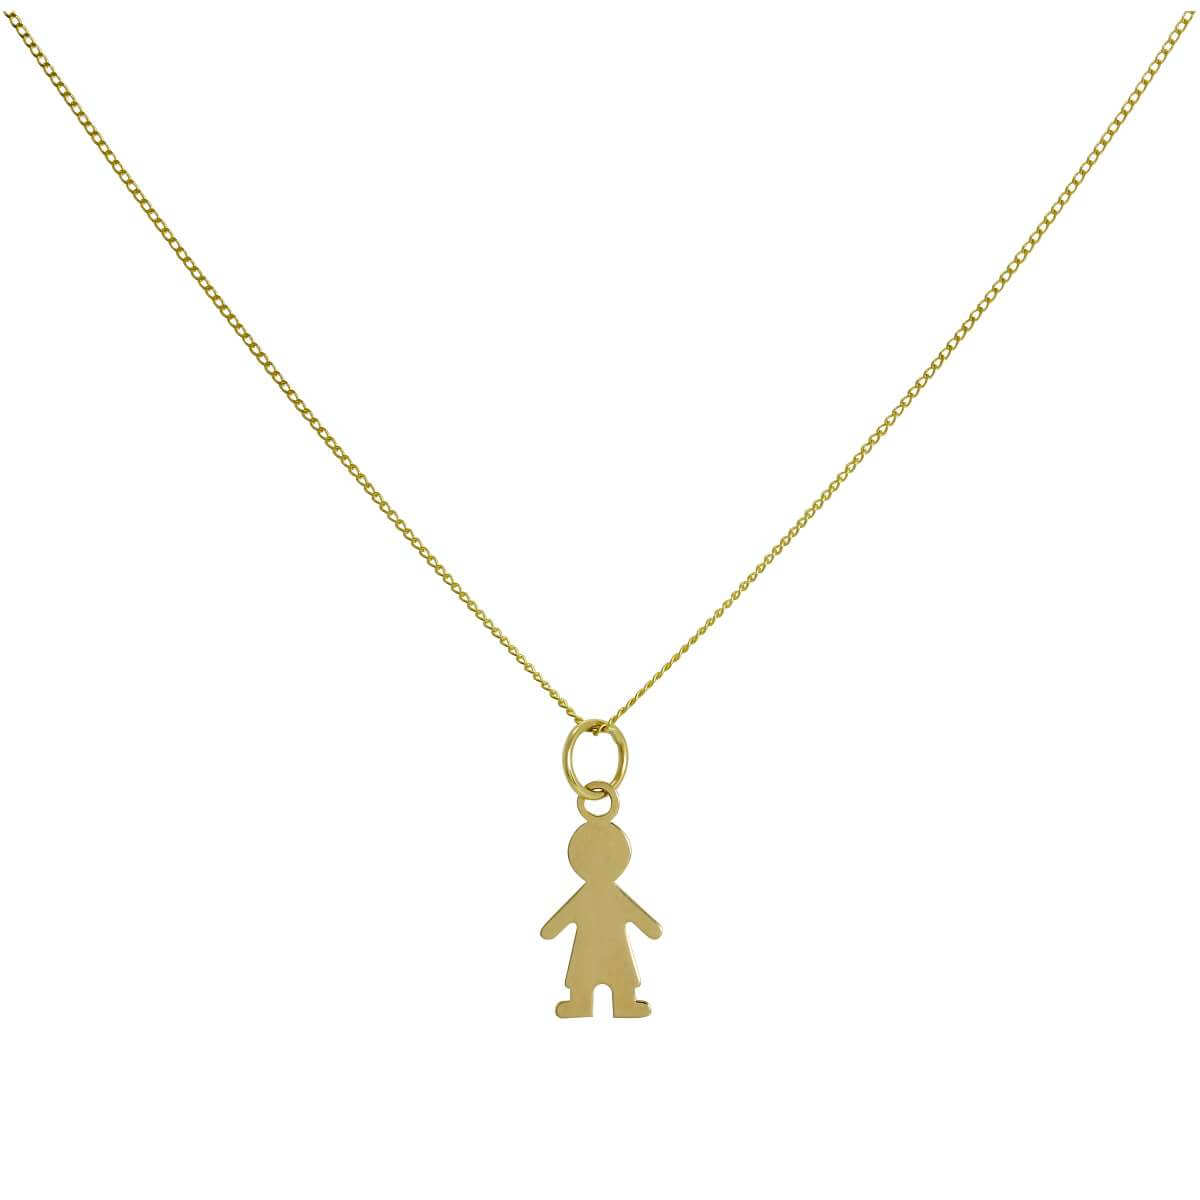 9ct Gold Ragdoll Boy Pendant Necklace 16 - 20 Inches